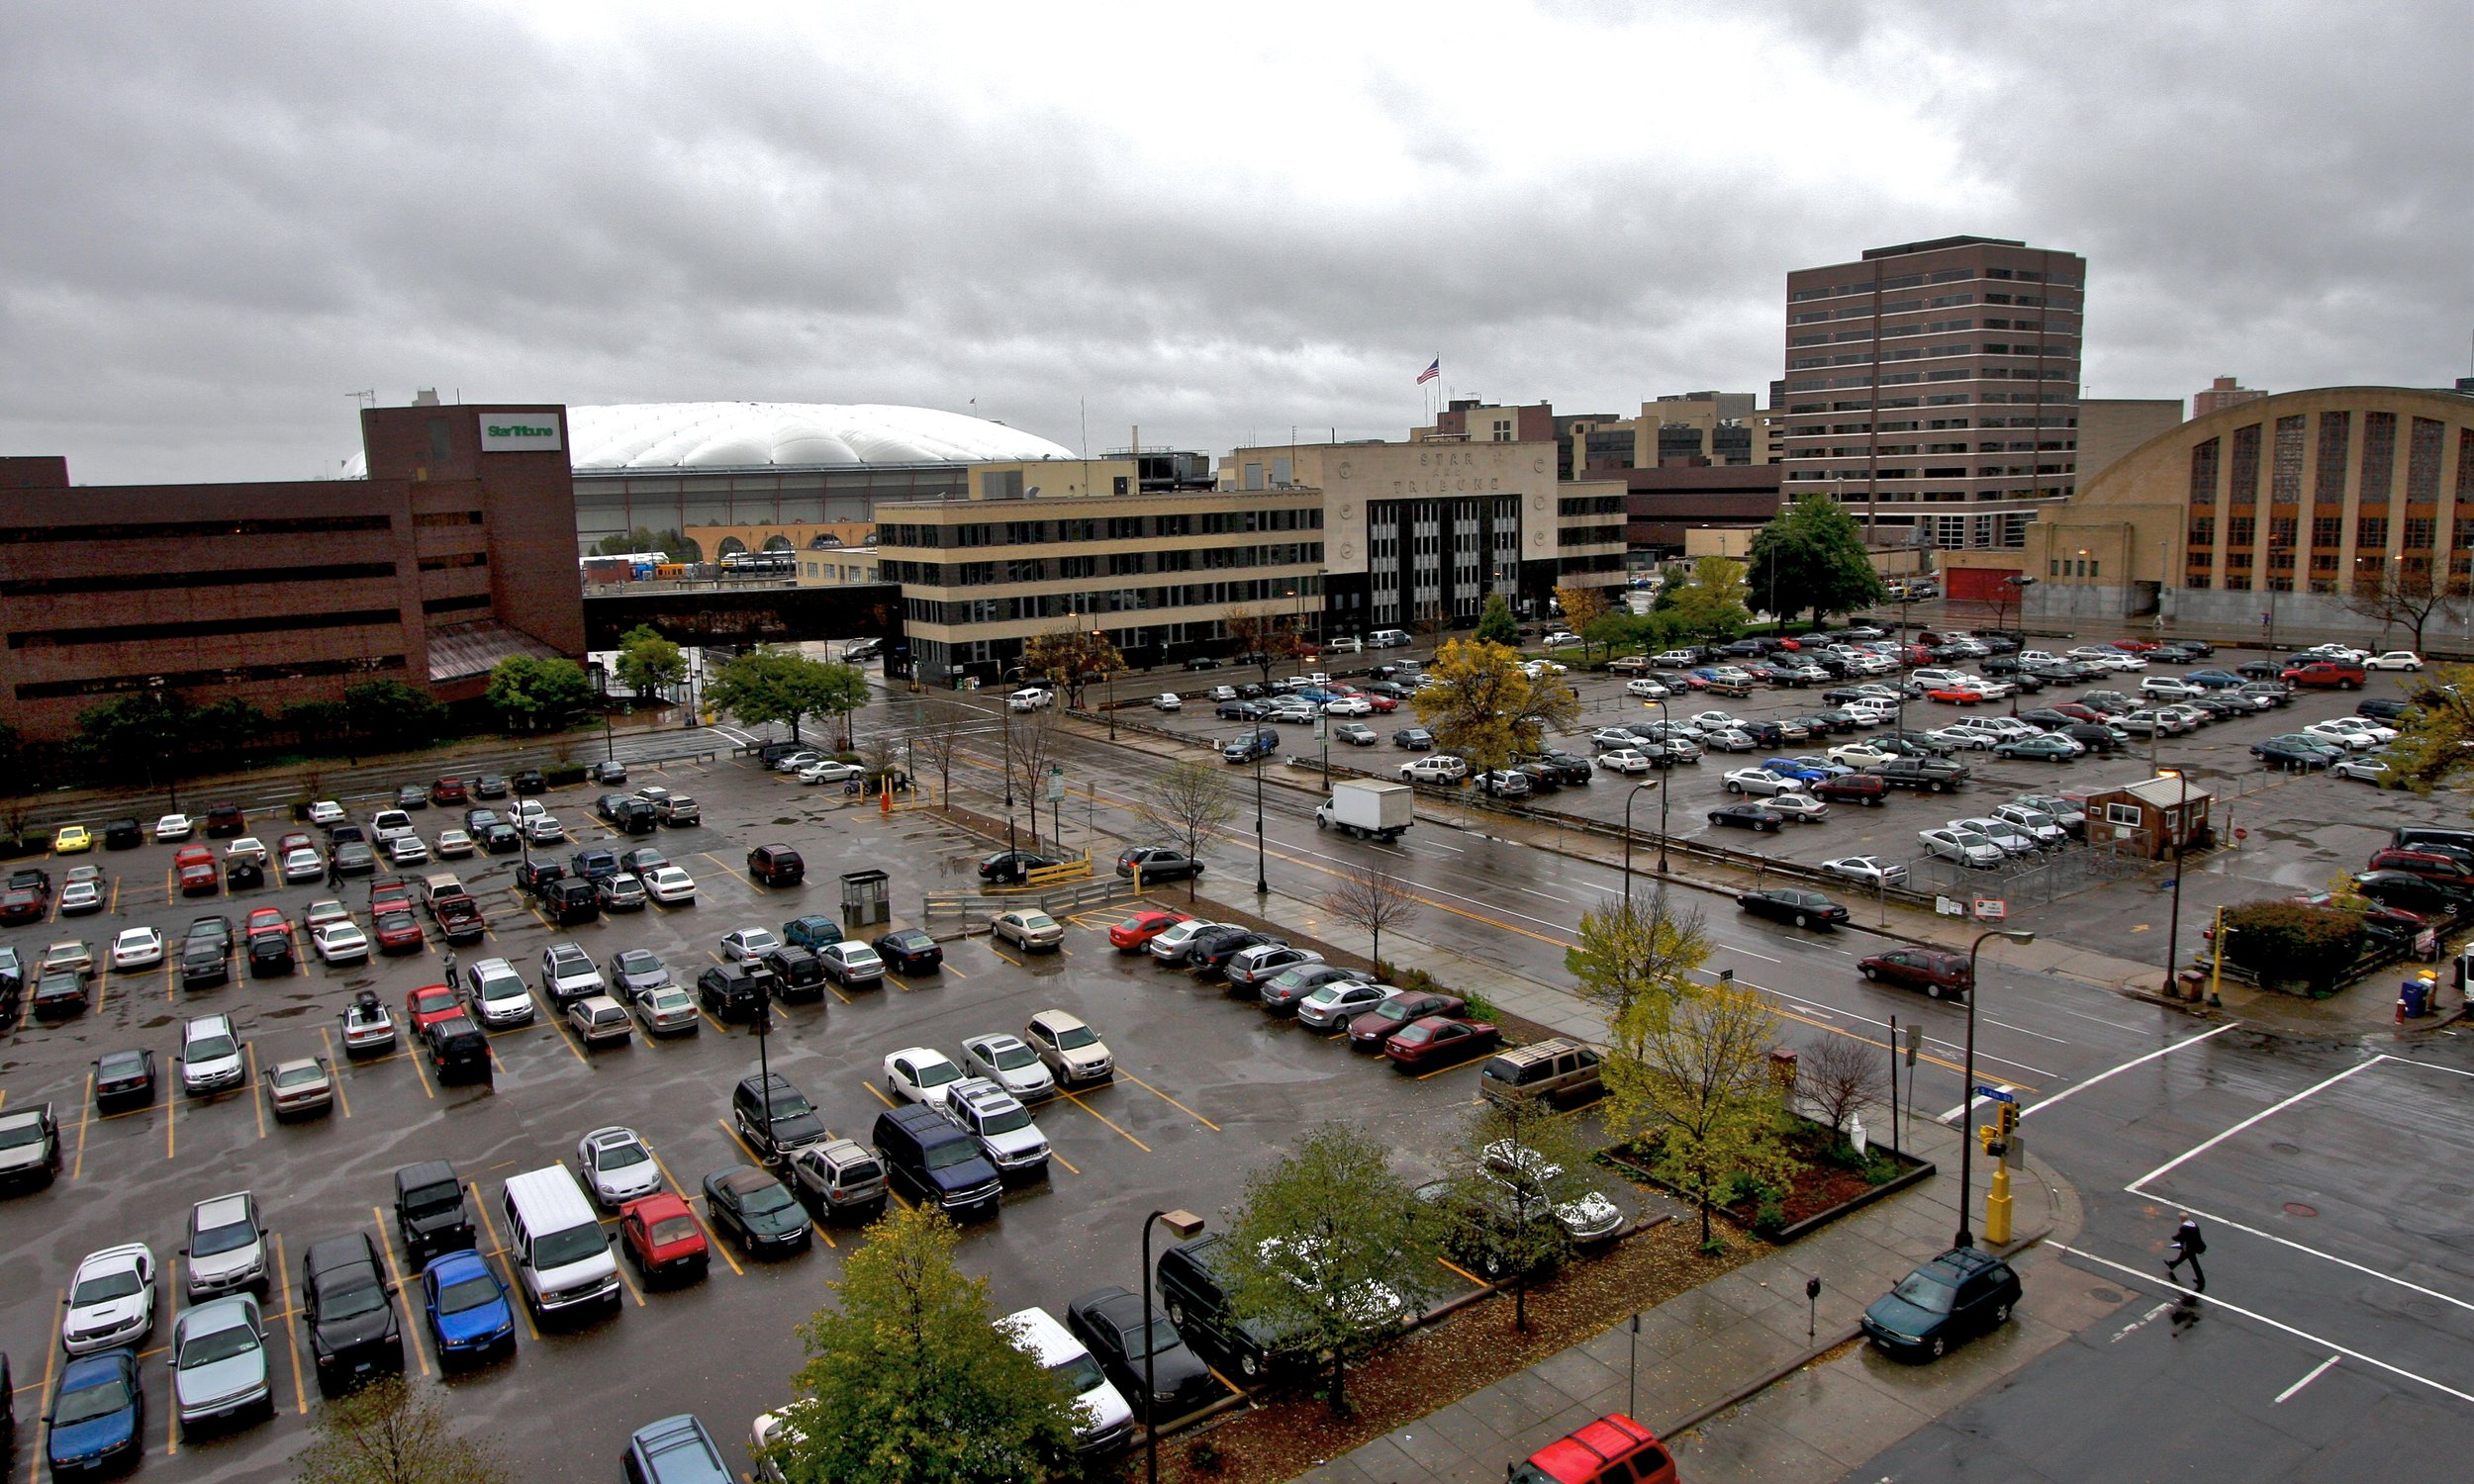 Surface parking near the Metrodome in downtown Minneapolis, 2007.  Photo from Wikimedia.